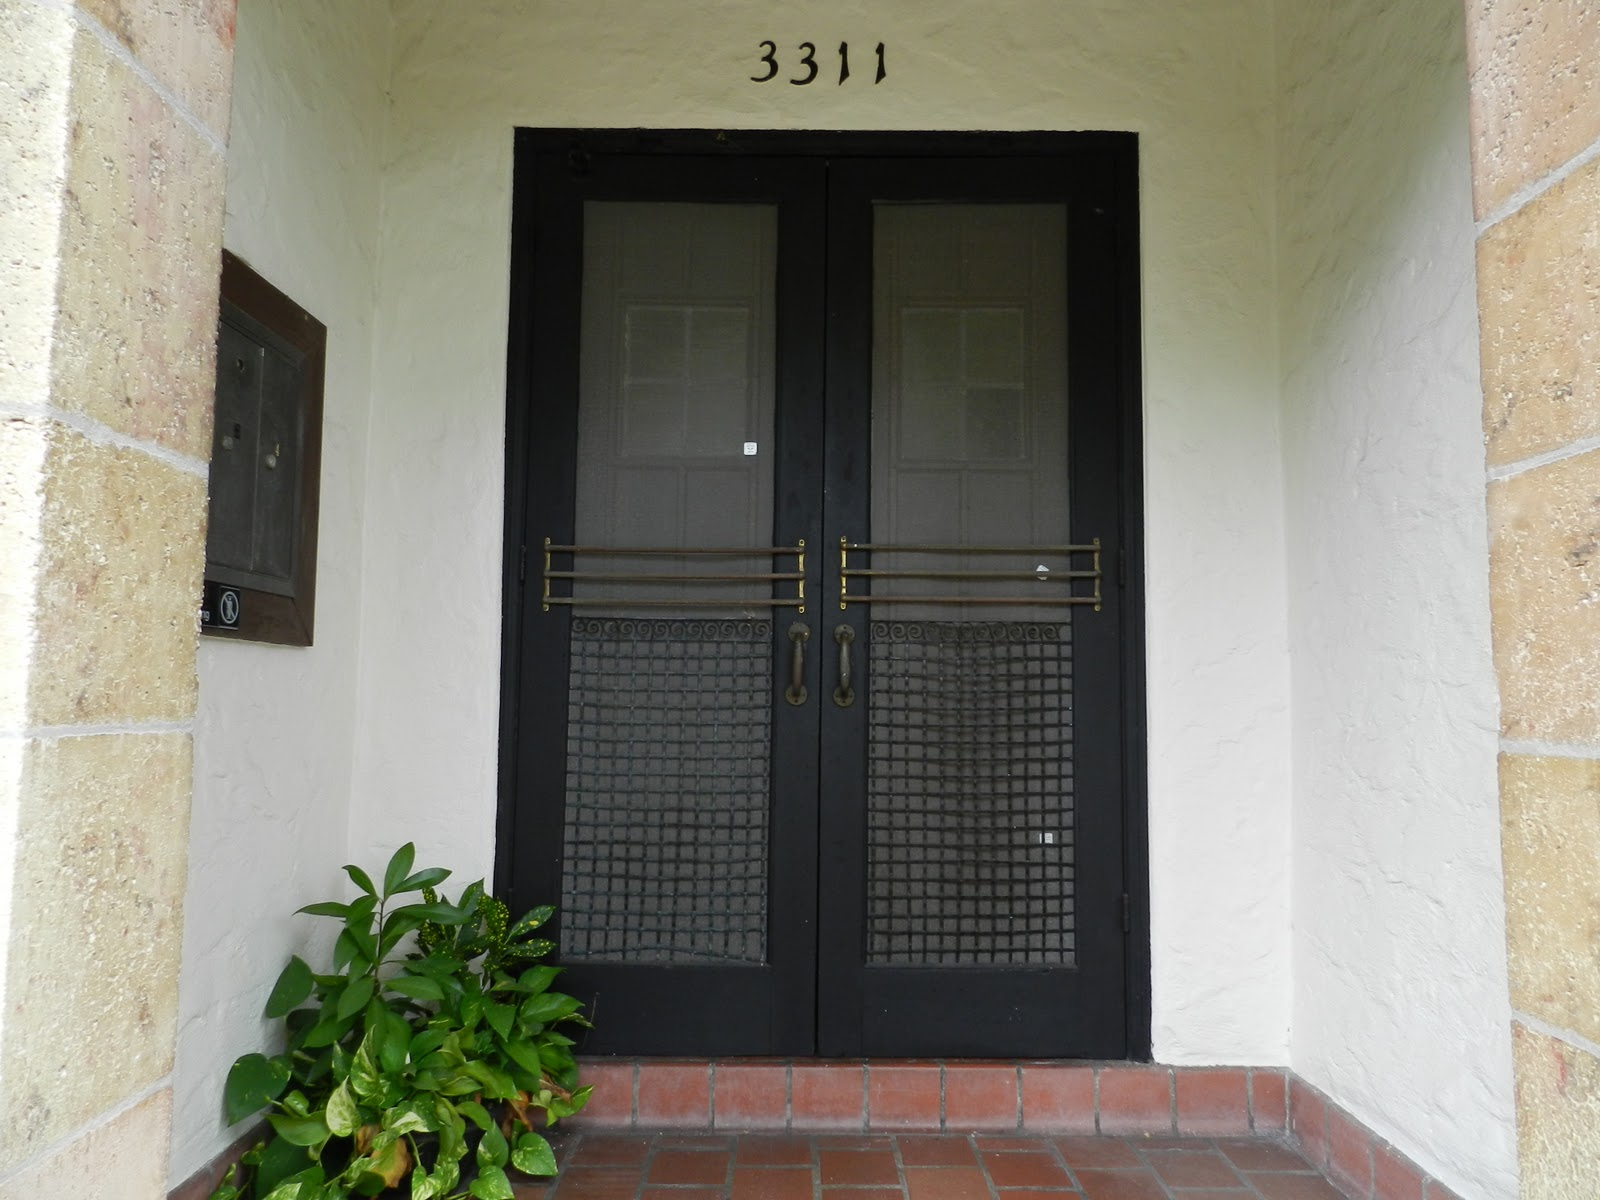 Double front entry doors can be arched to look more elegant